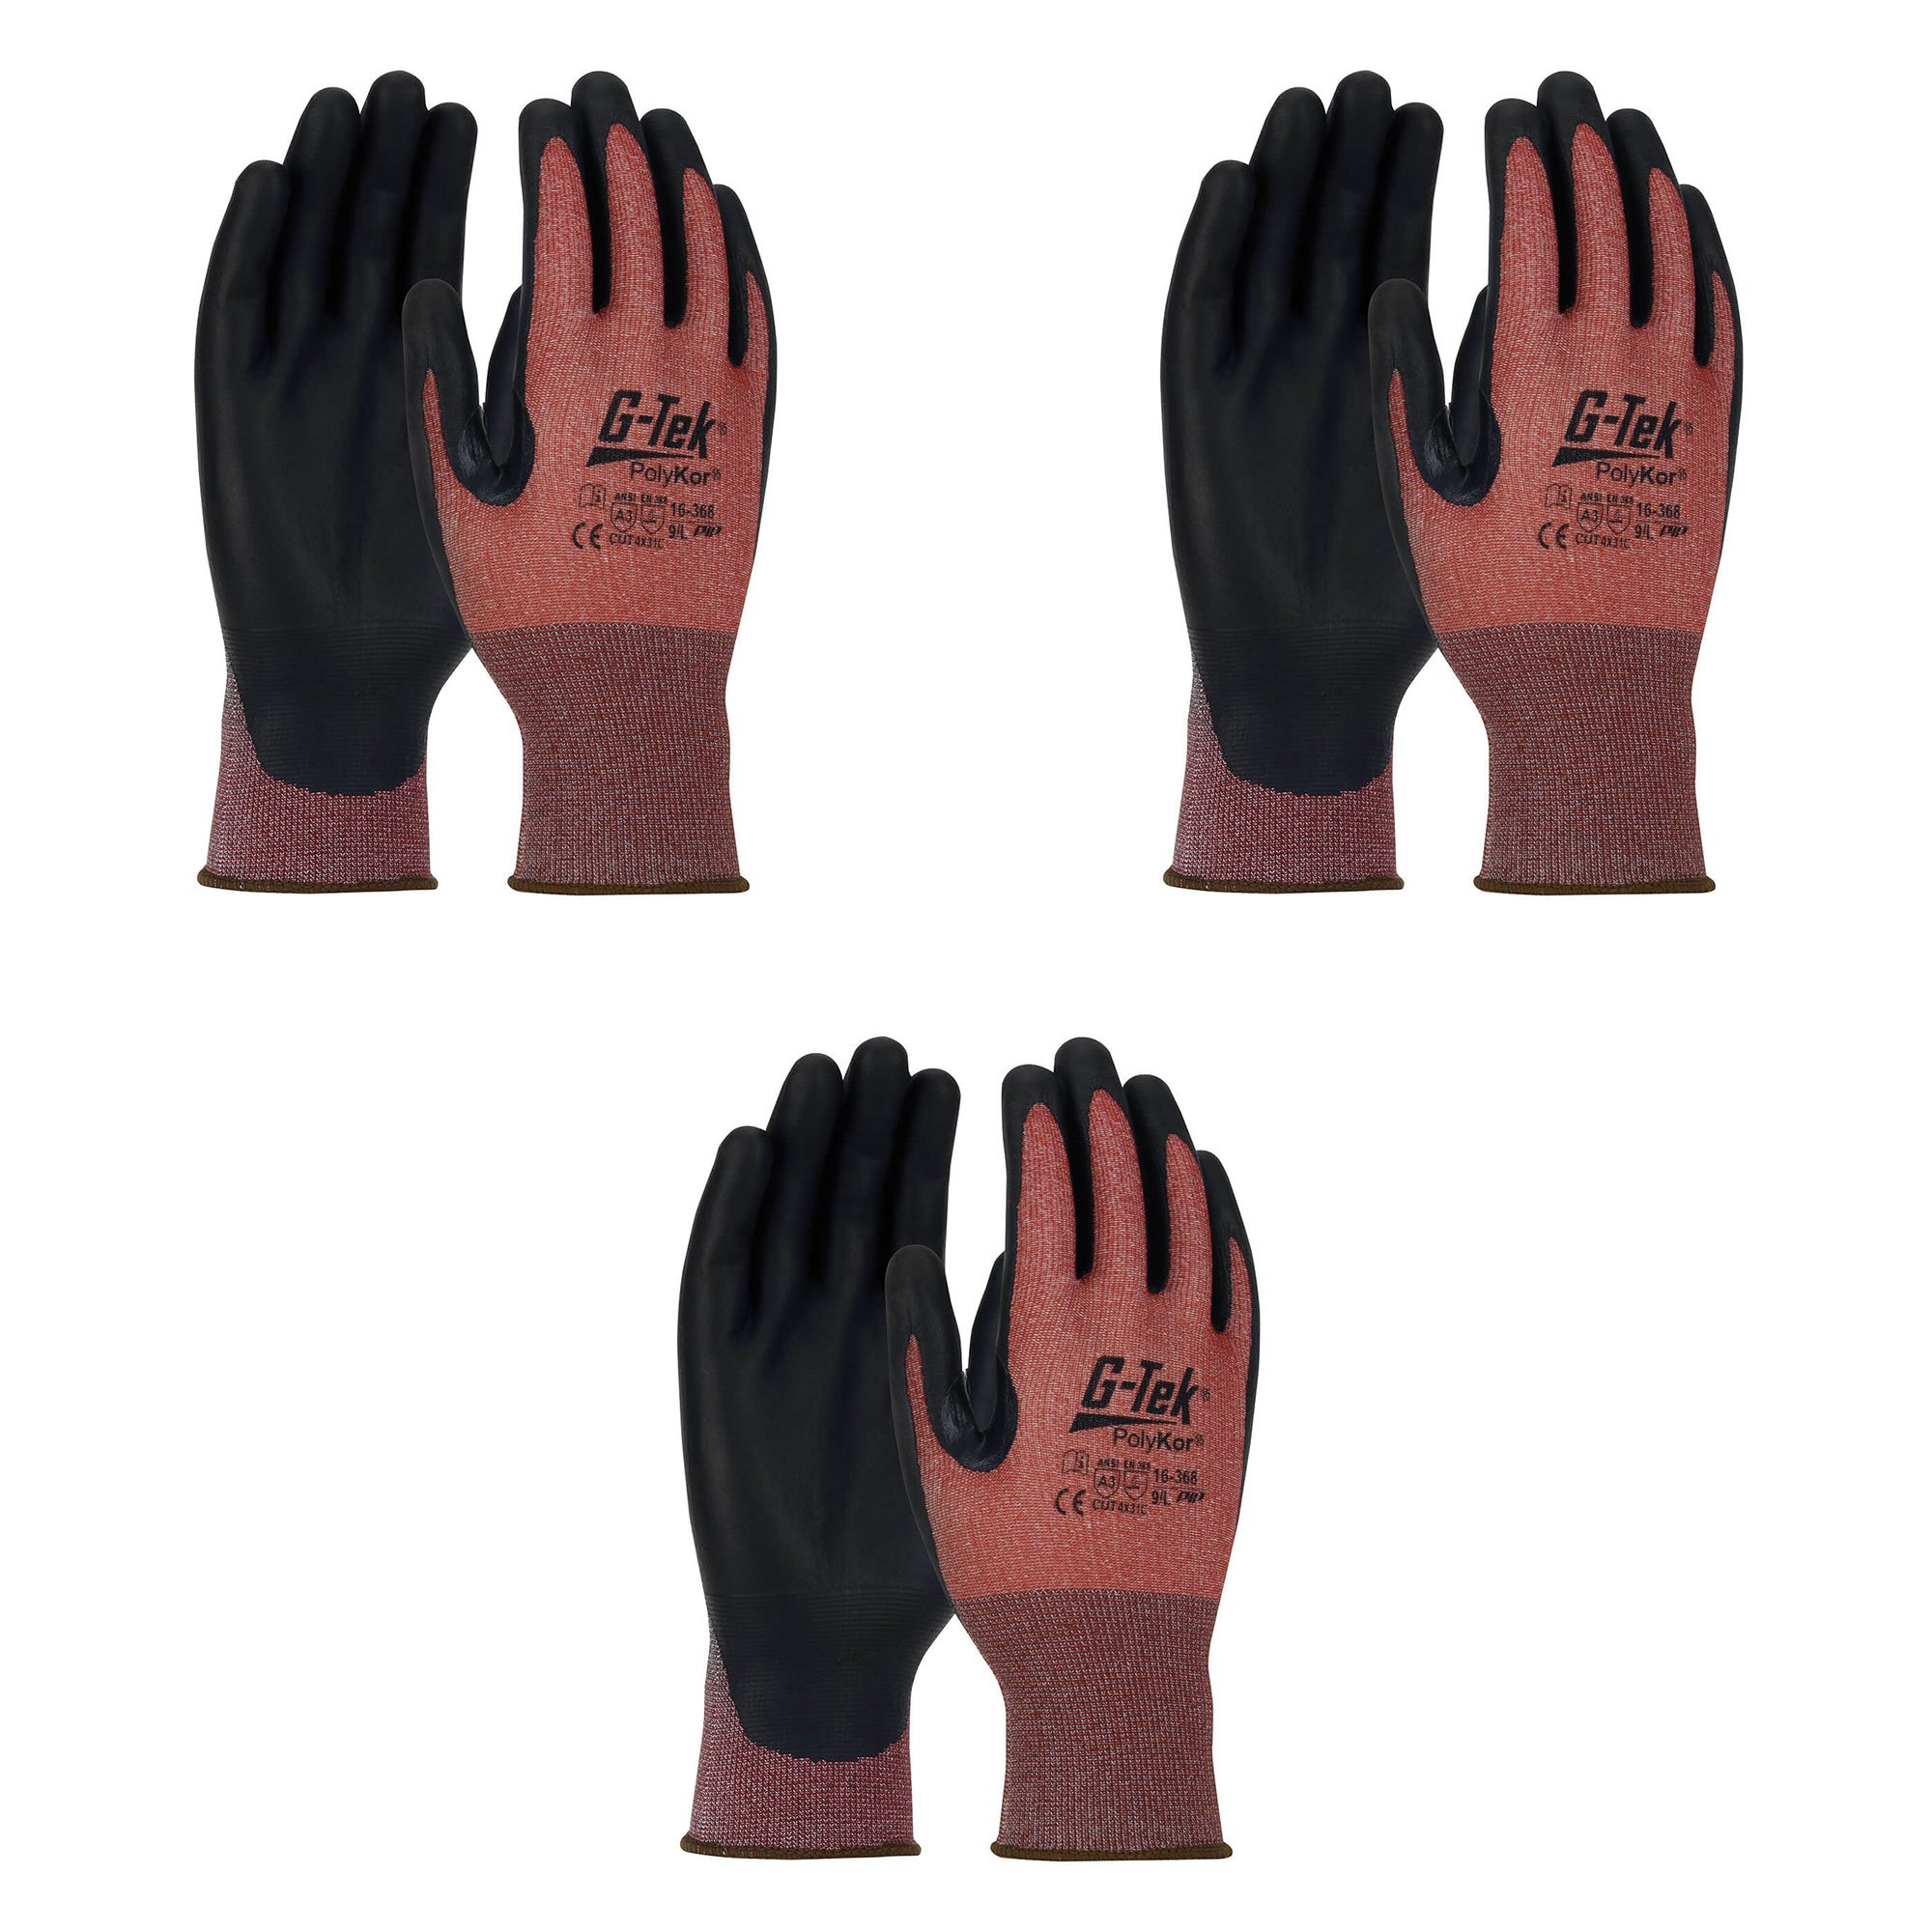 PIP G-TEK X7 16-368 NeoFoam Coated Cut Resistant A3 Touch Screen Work Glove, Seamless Knit PolyKor Blended Gloves (3 Pair pack) (Medium)